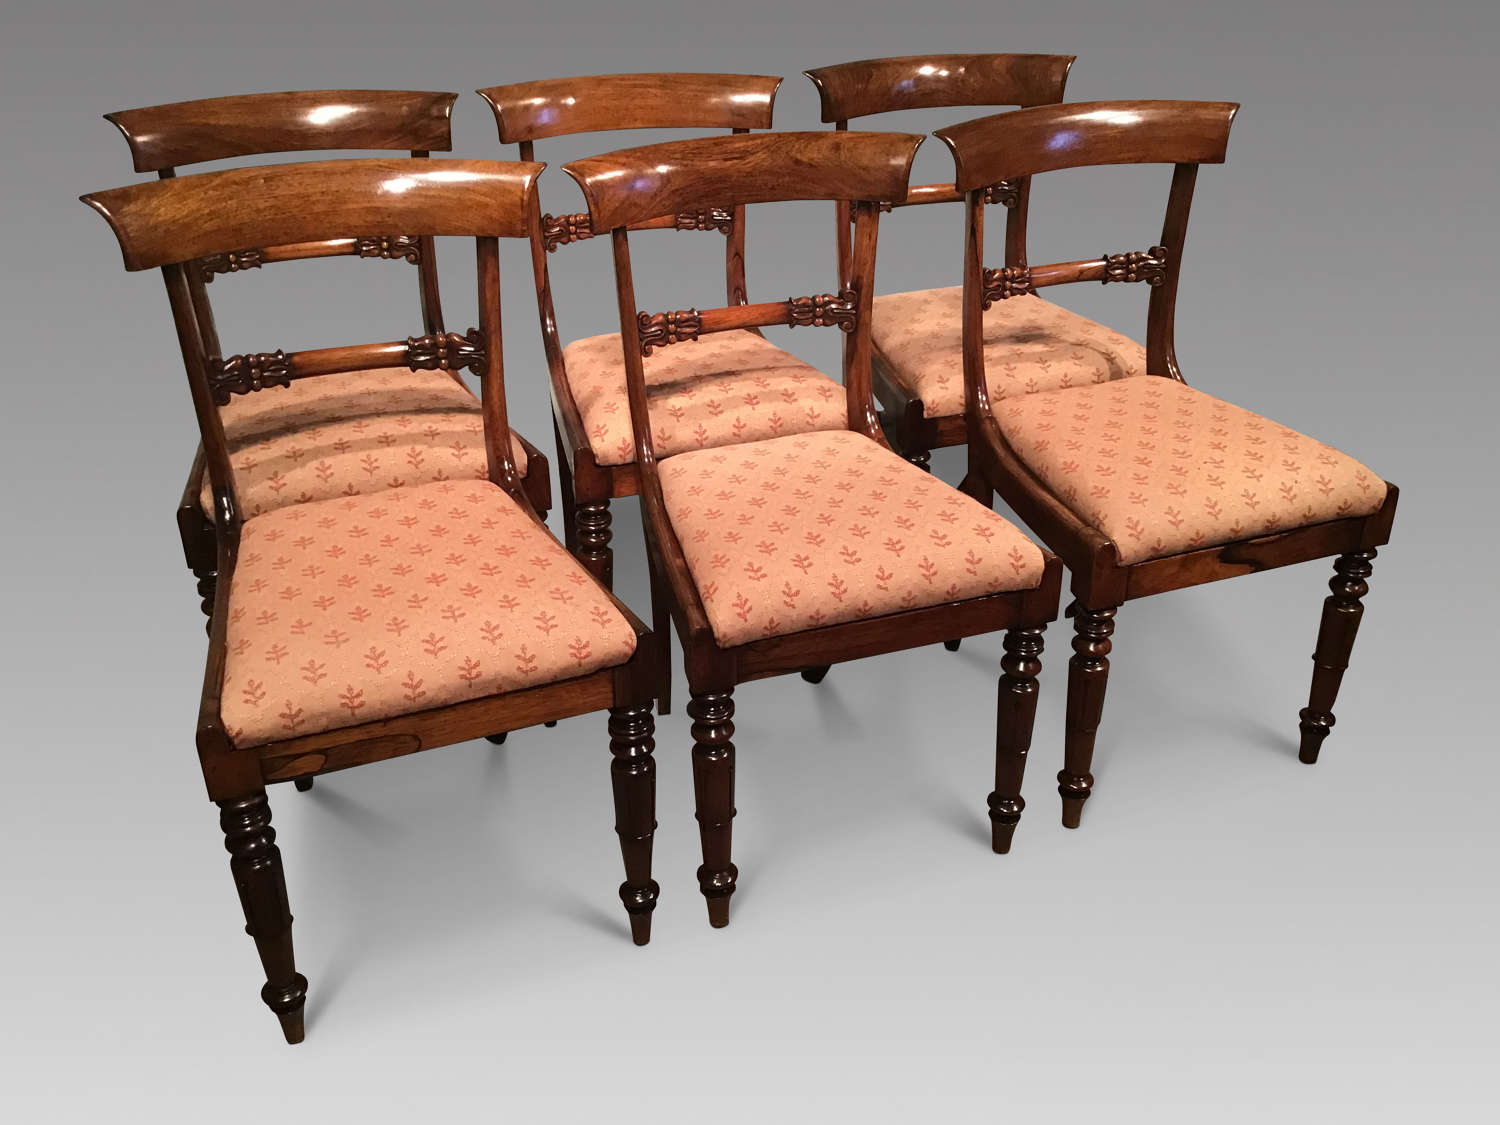 Set of William IV rosewood chairs